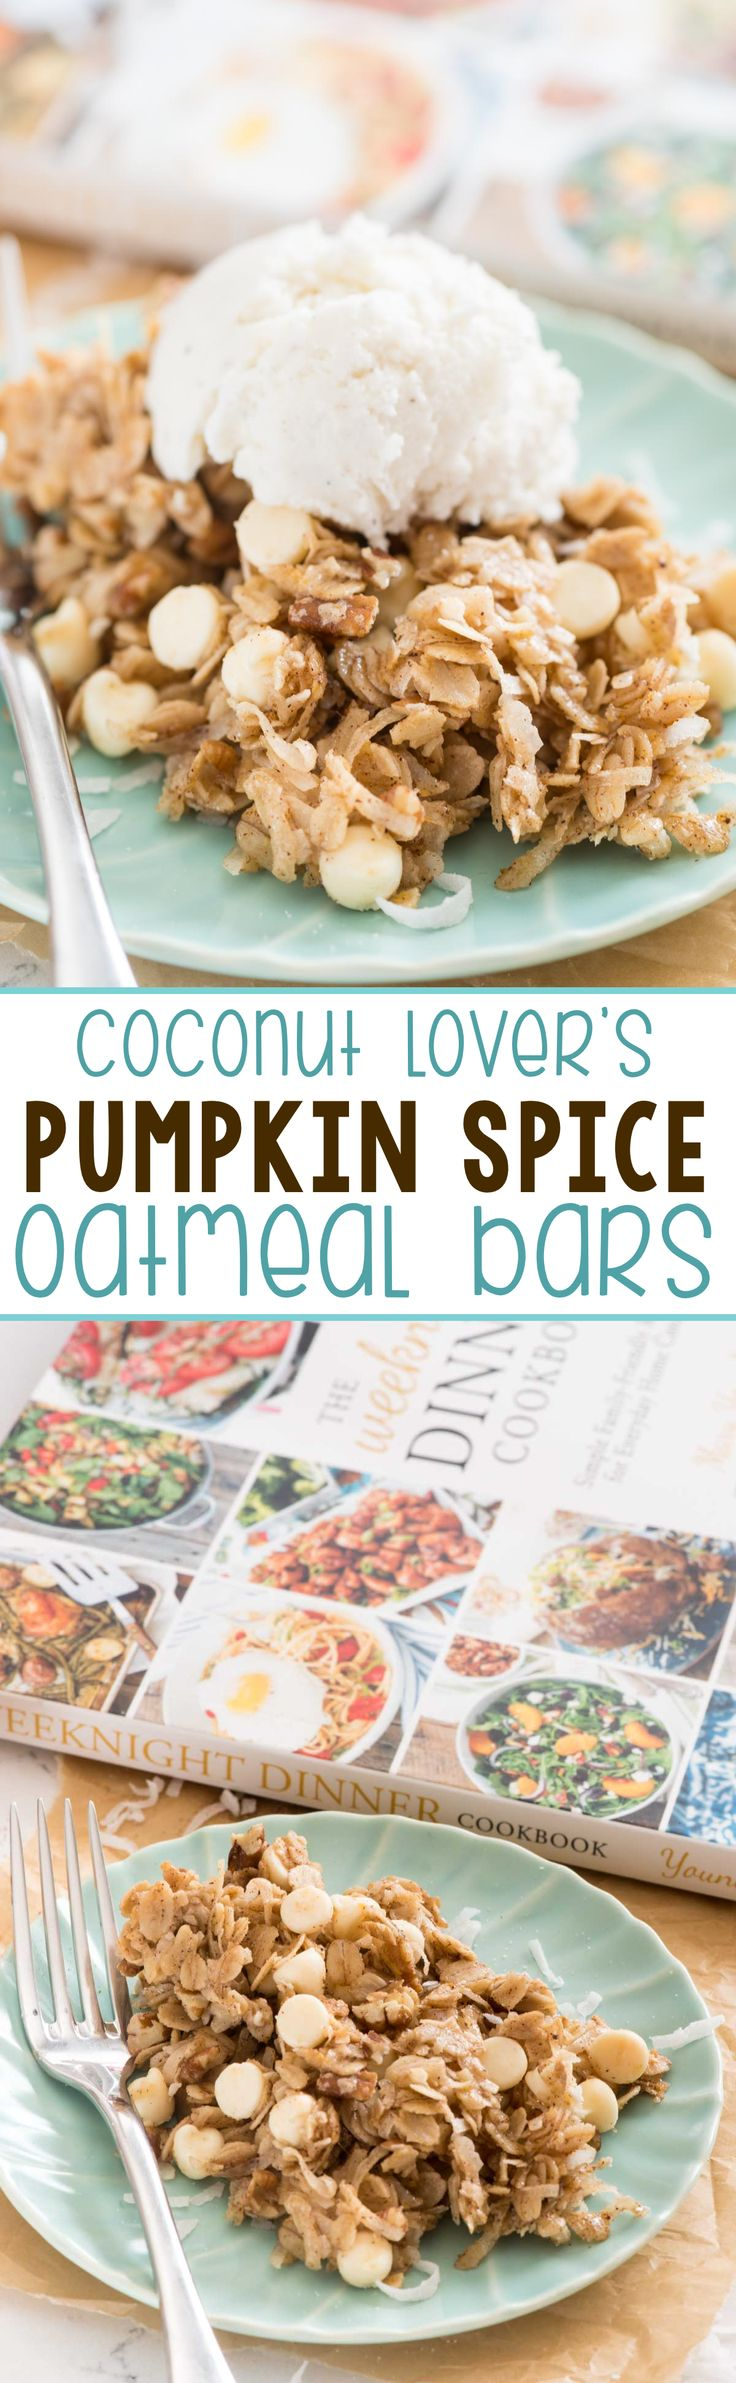 Easy Coconut Lover's Pumpkin Spice Oatmeal Bars - this simple dessert recipe is…